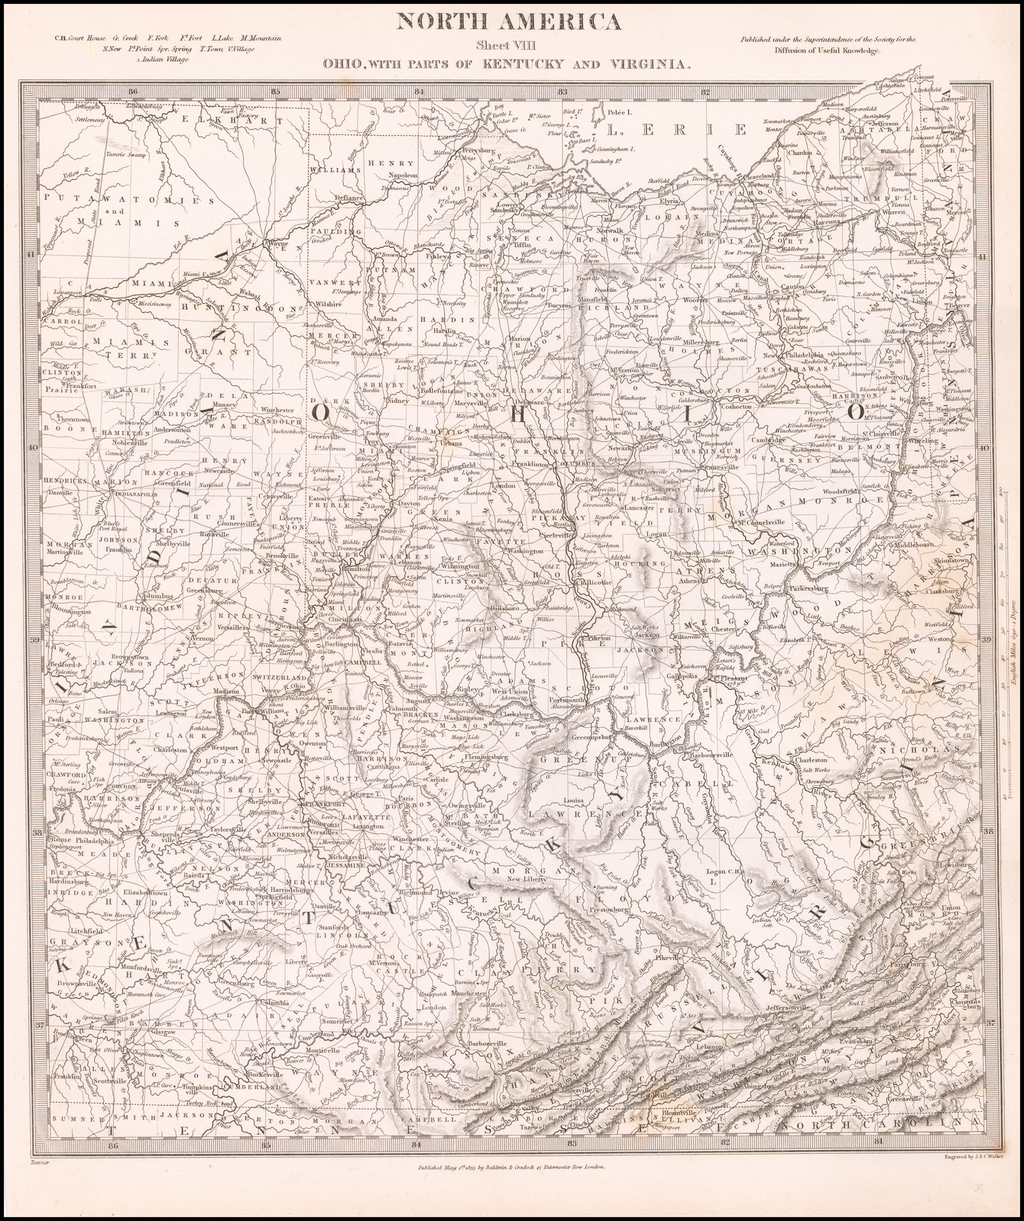 North America Sheet VIII Ohio, With Parts Of Kentucky And Virginia By SDUK